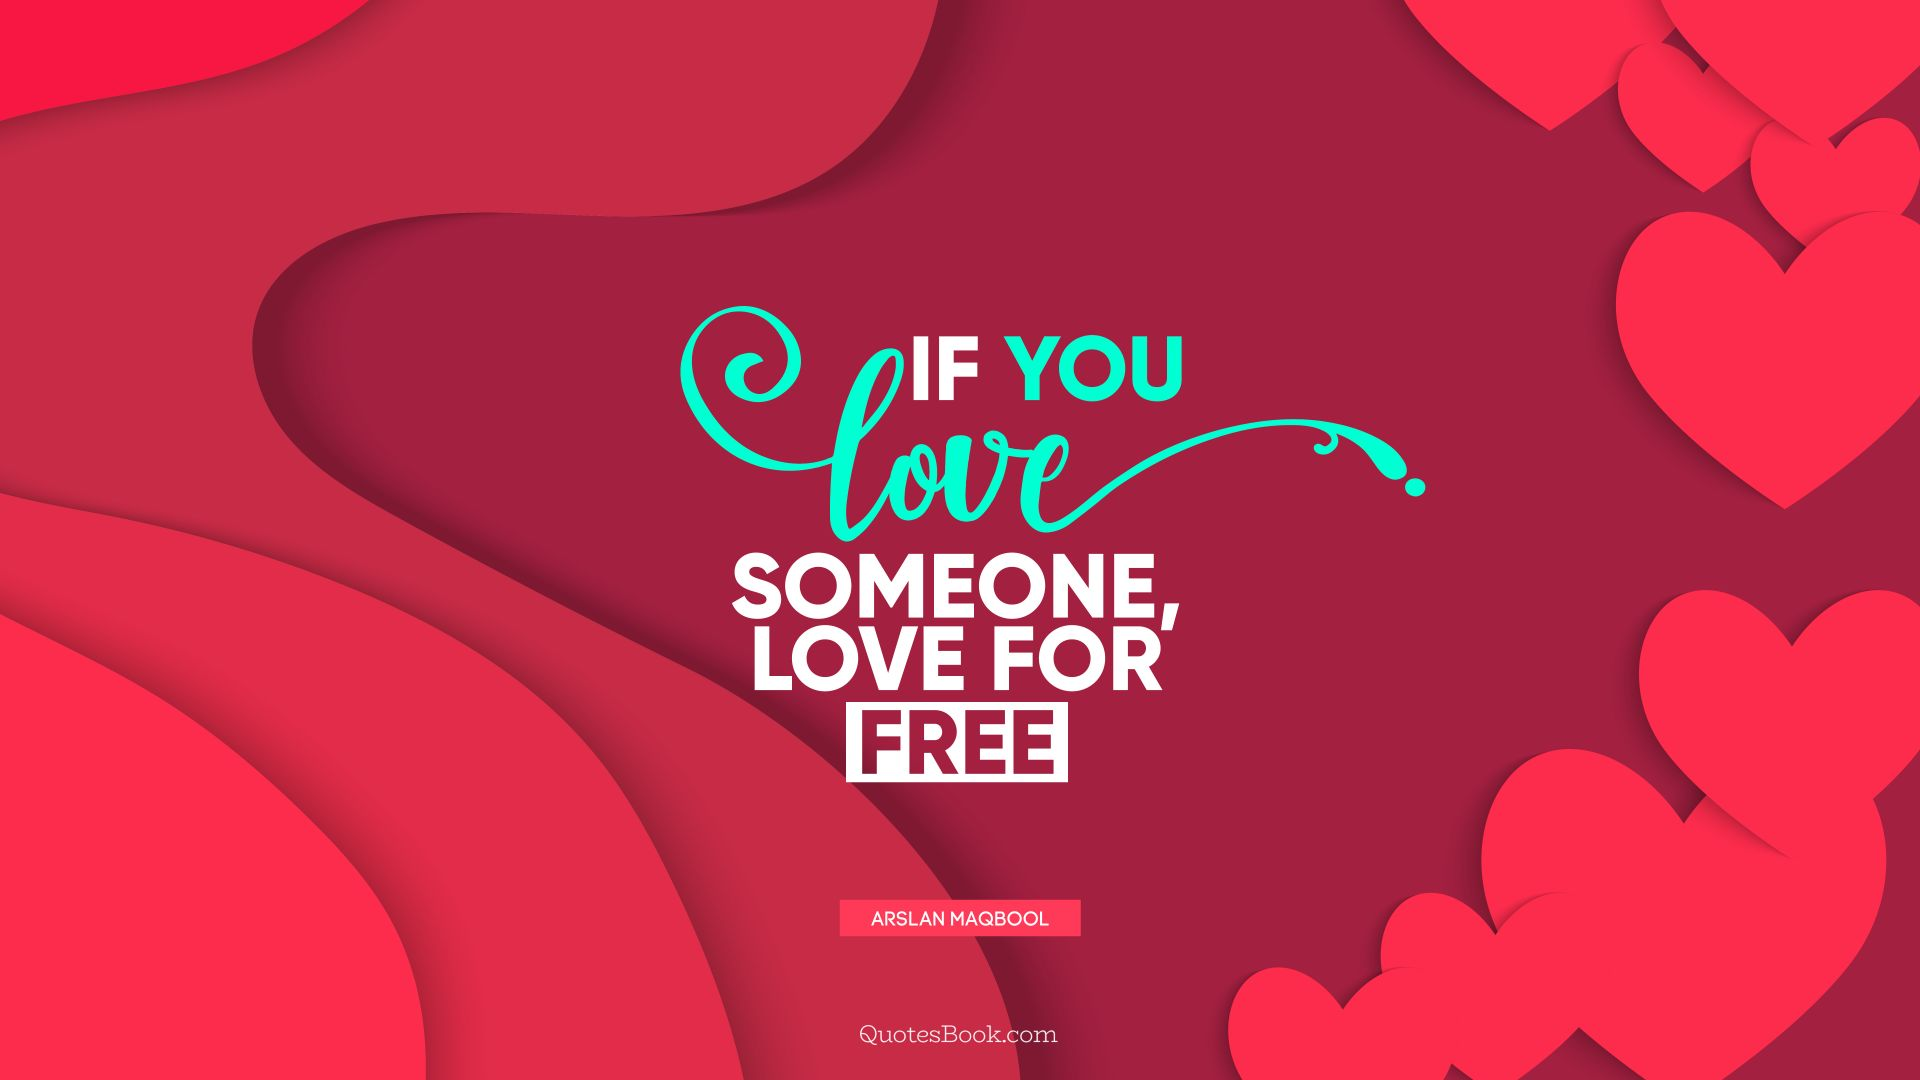 If you love someone, love for free. - Quote by Arslan Maqbool